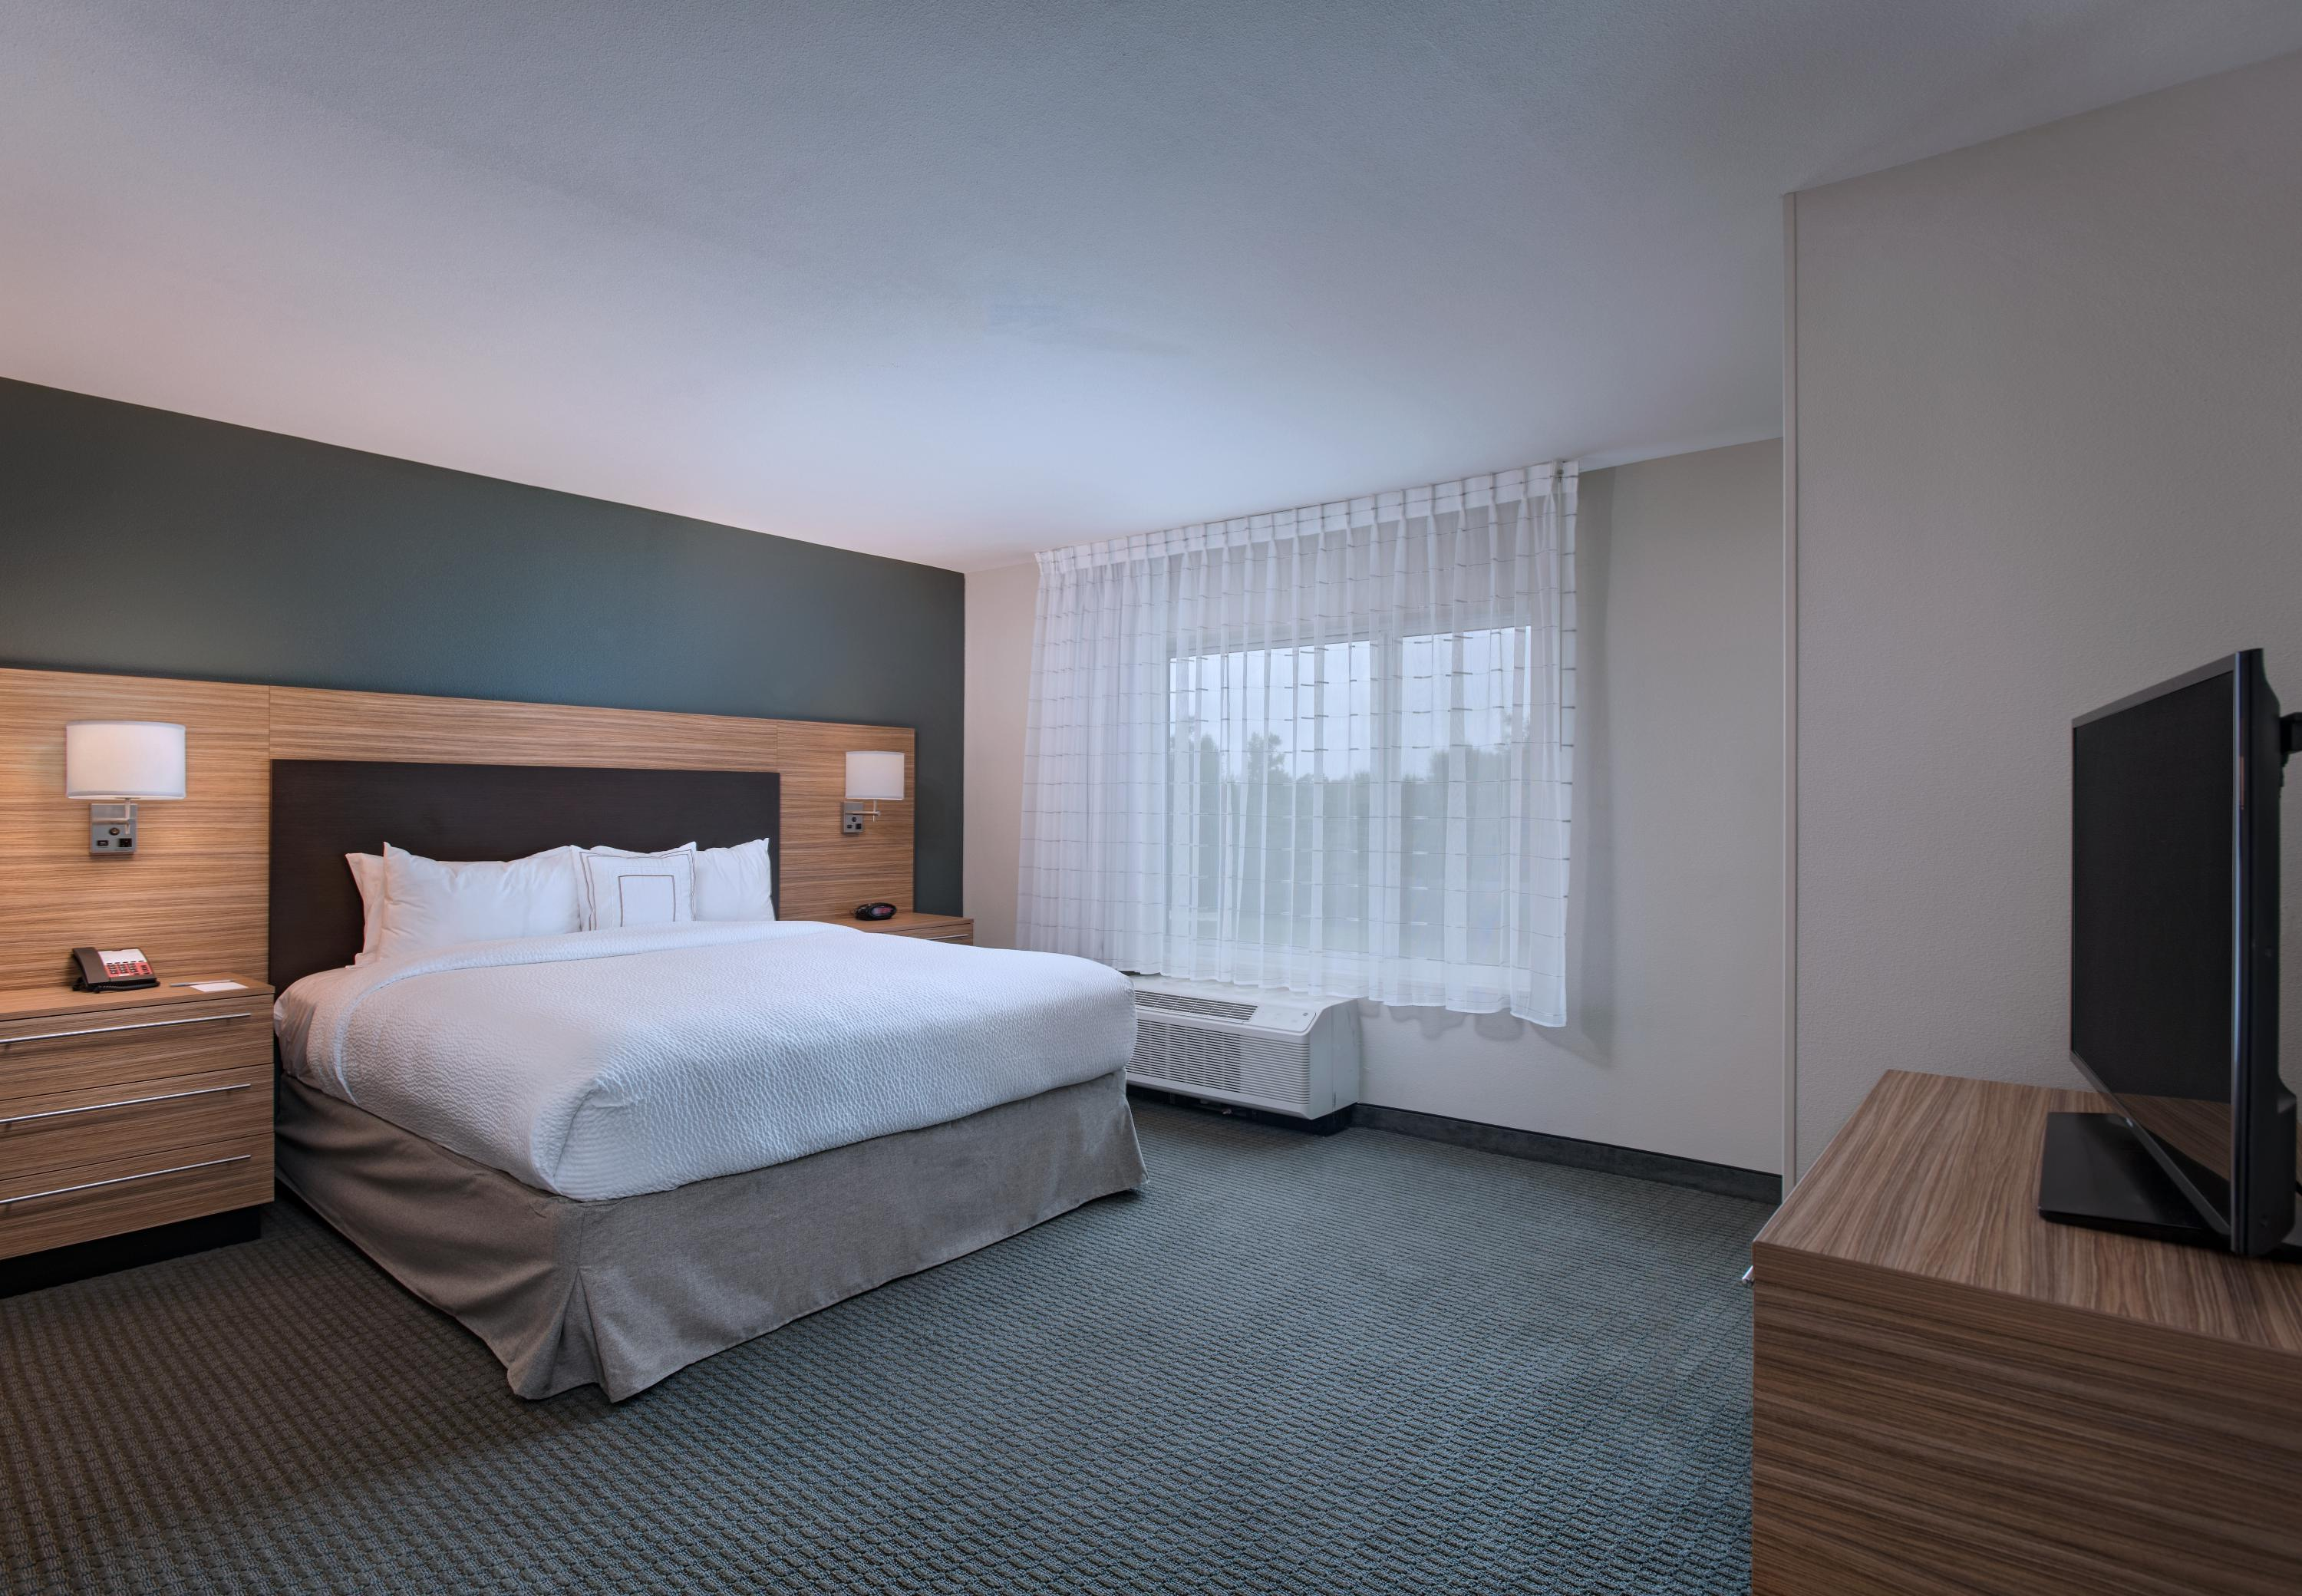 TownePlace Suites by Marriott Lake Charles image 7